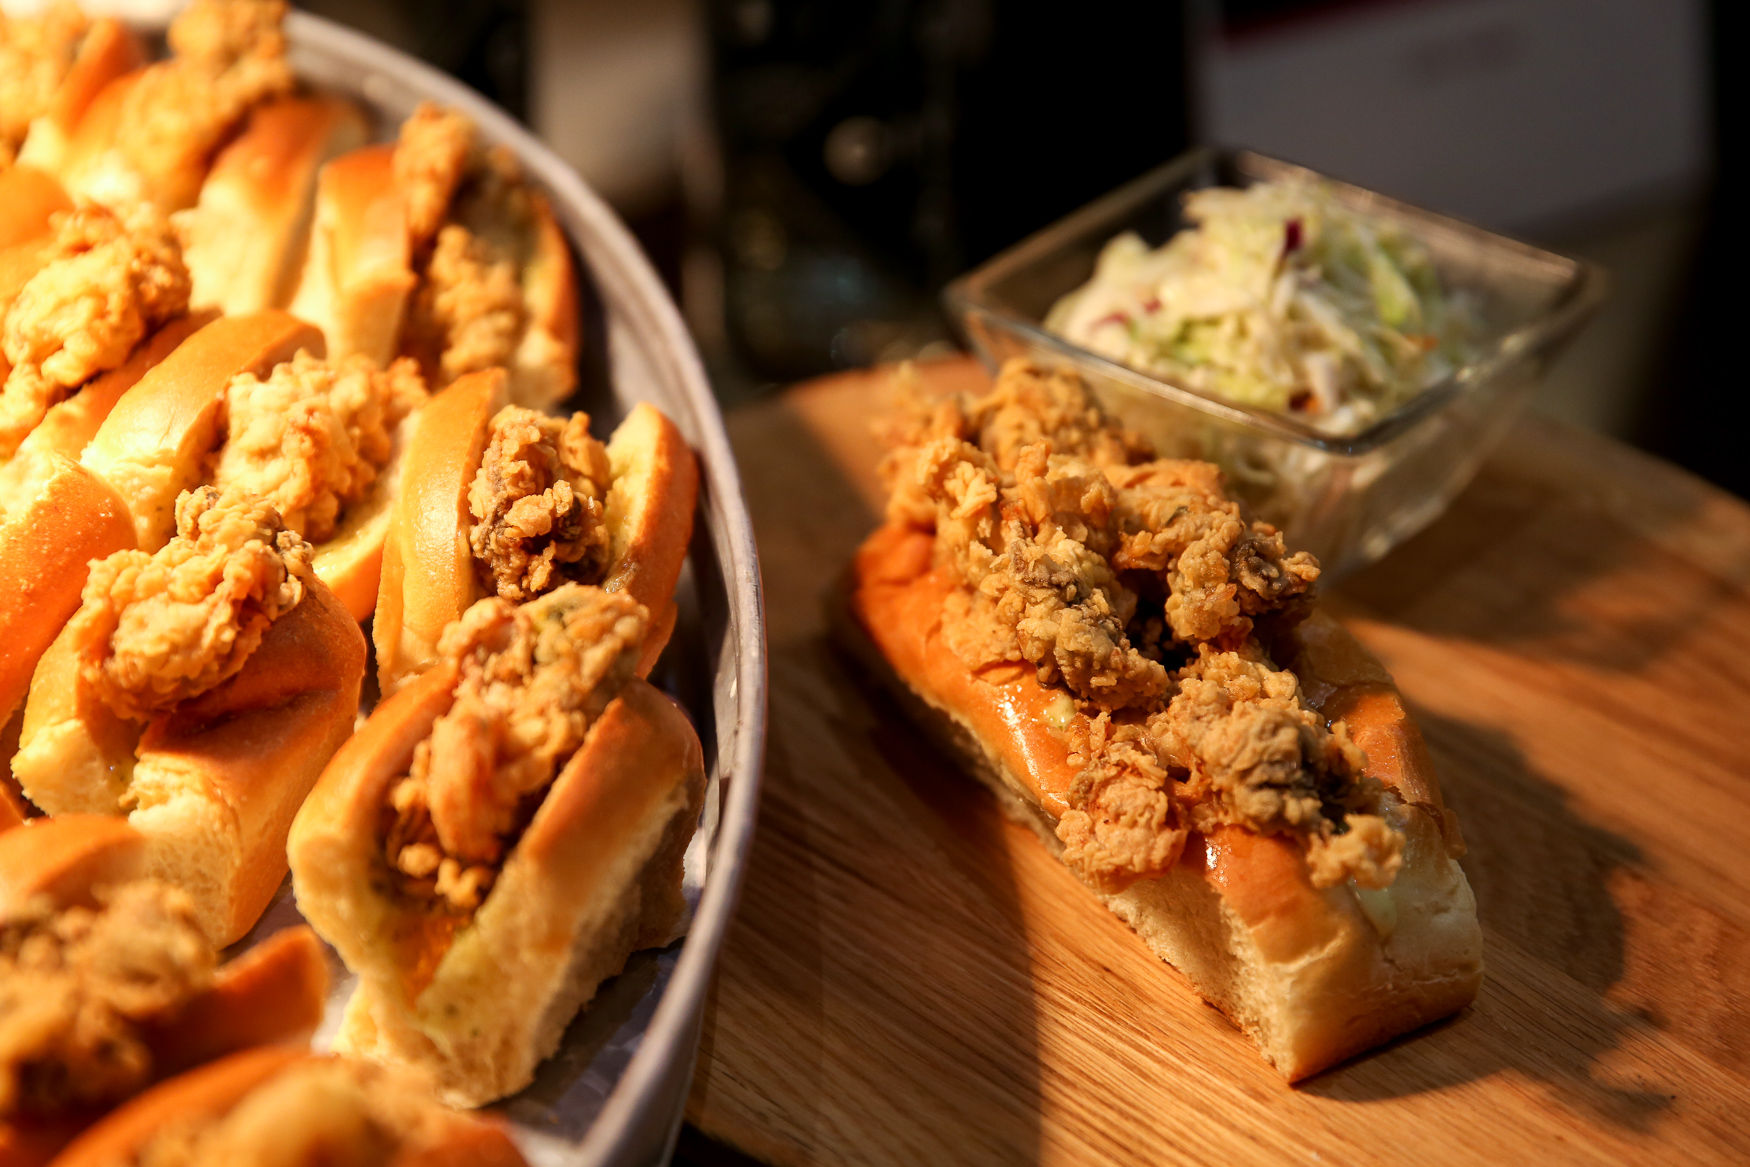 Hank's Oyster Bar will be slinging po'boys and more. (Amanda Andrade-Rhoades/DC Refined)